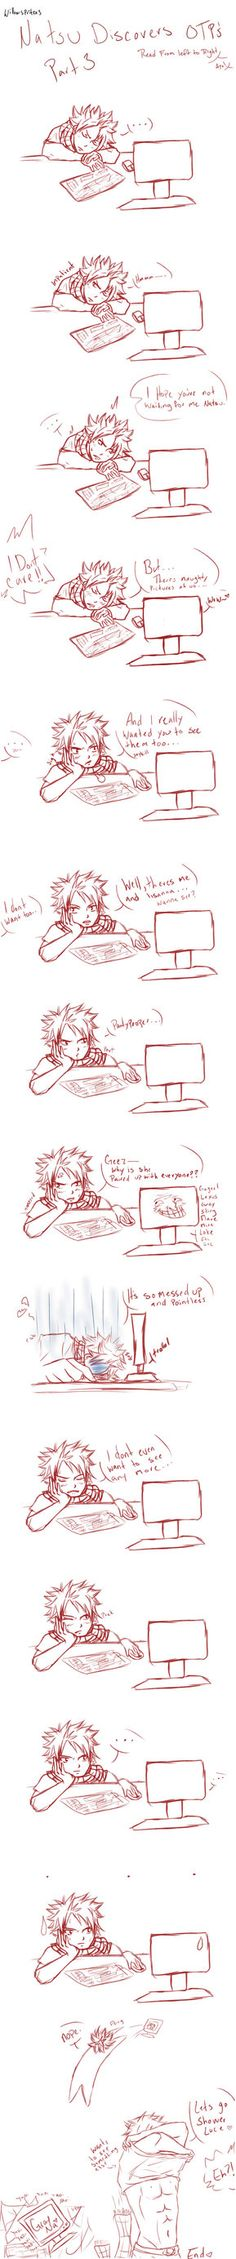 Natsu Discovers OTP's - Nalu III by willowspritex3 on DeviantArt~ Fairy Tail